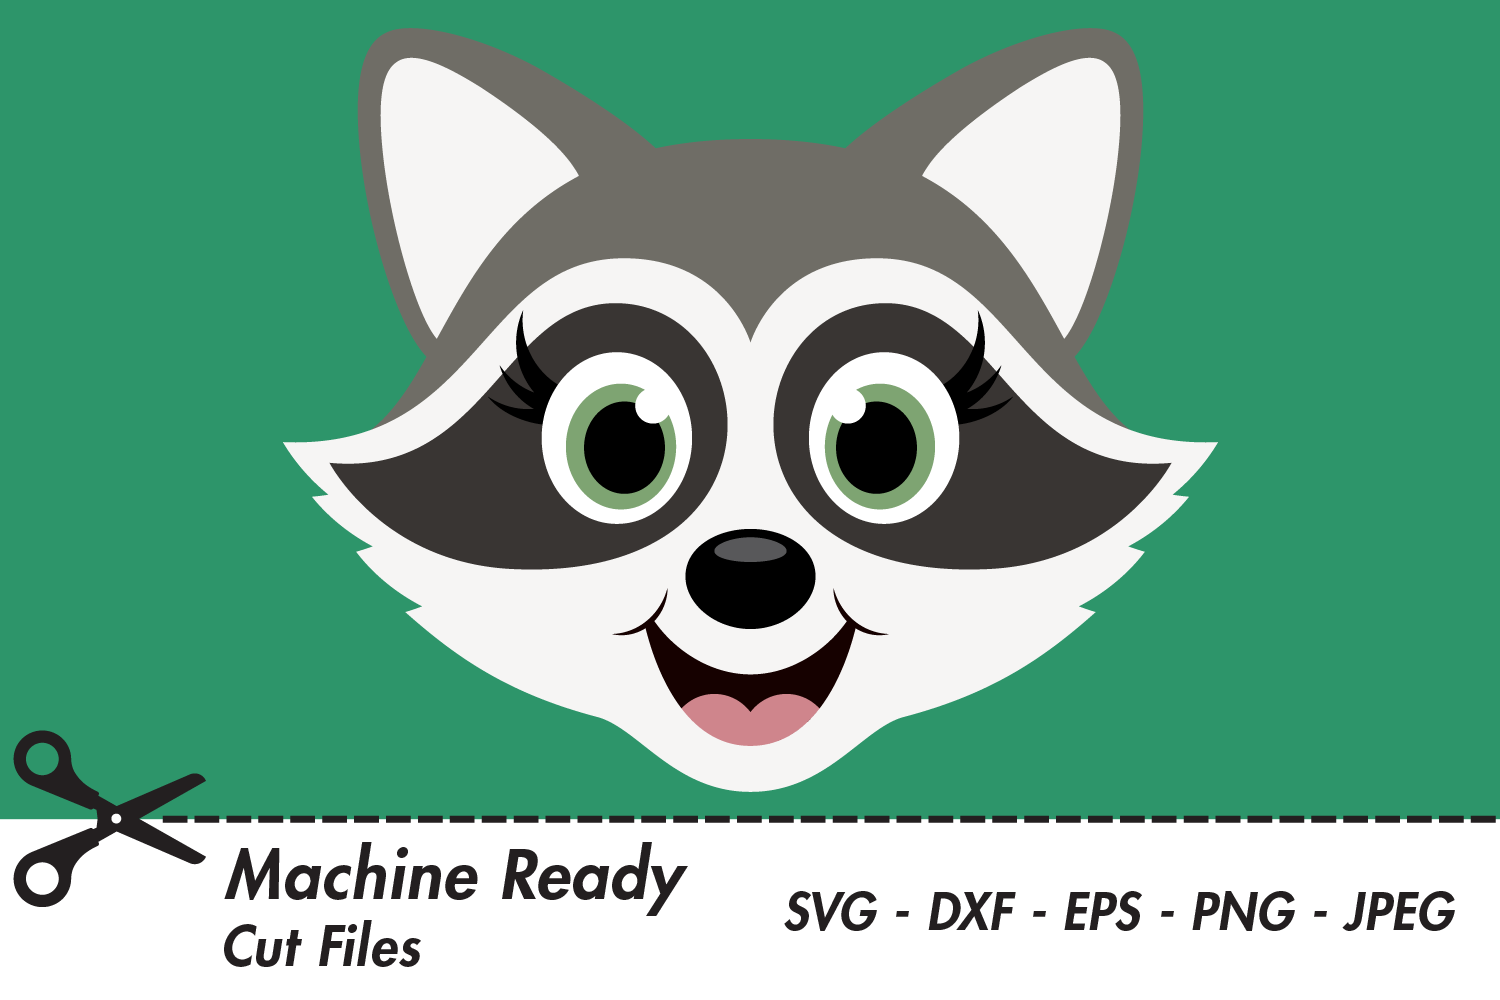 Download Free Cute Girl Raccoon Face Graphic By Captaincreative Creative Fabrica for Cricut Explore, Silhouette and other cutting machines.